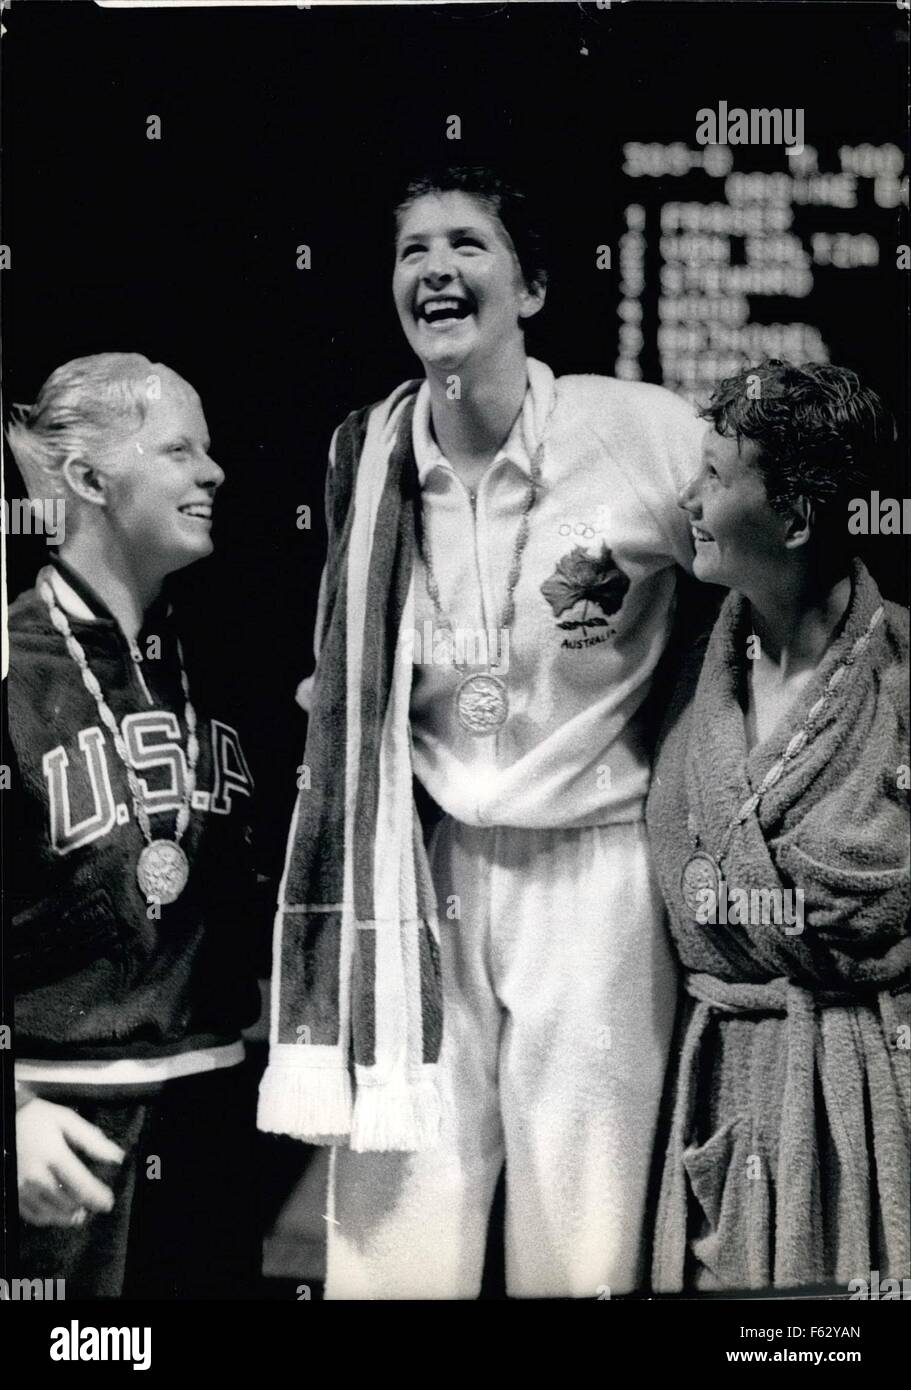 Dawn Fraser 8 Olympic medals Dawn Fraser 8 Olympic medals new picture